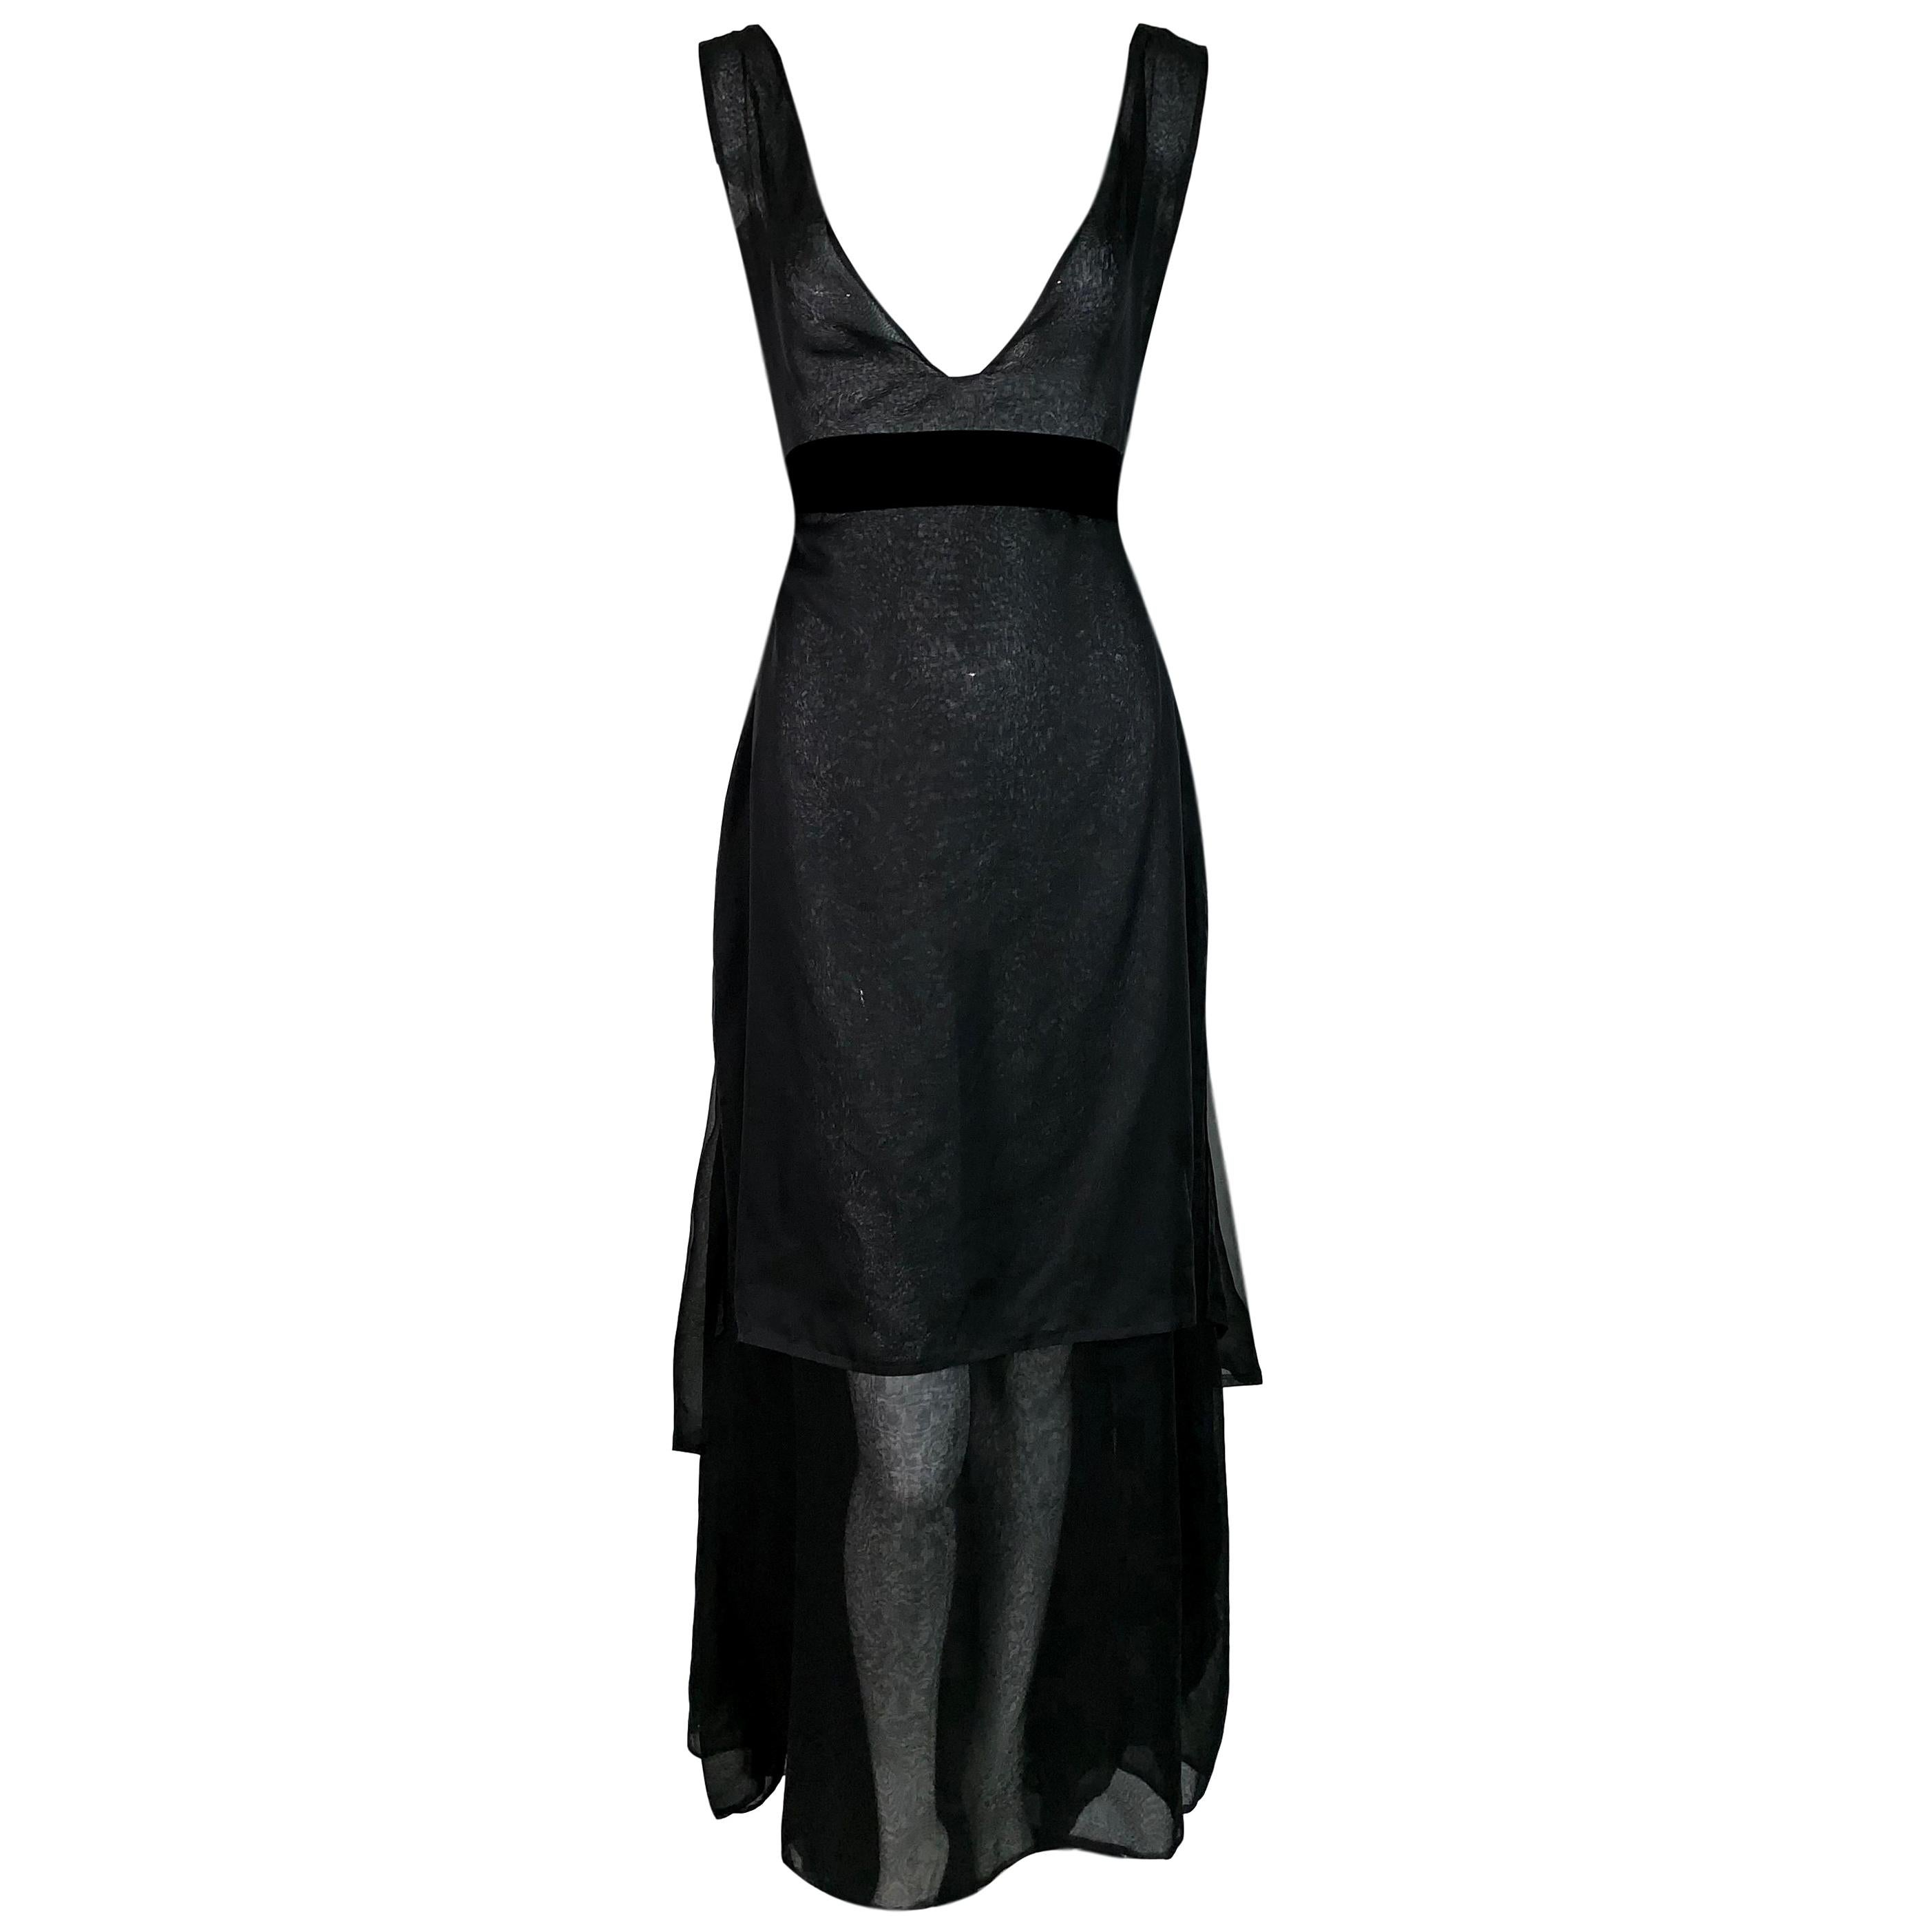 F/W 2002 Yves Saint Laurent Tom Ford Runway Sheer Black Plunging Gown Dress